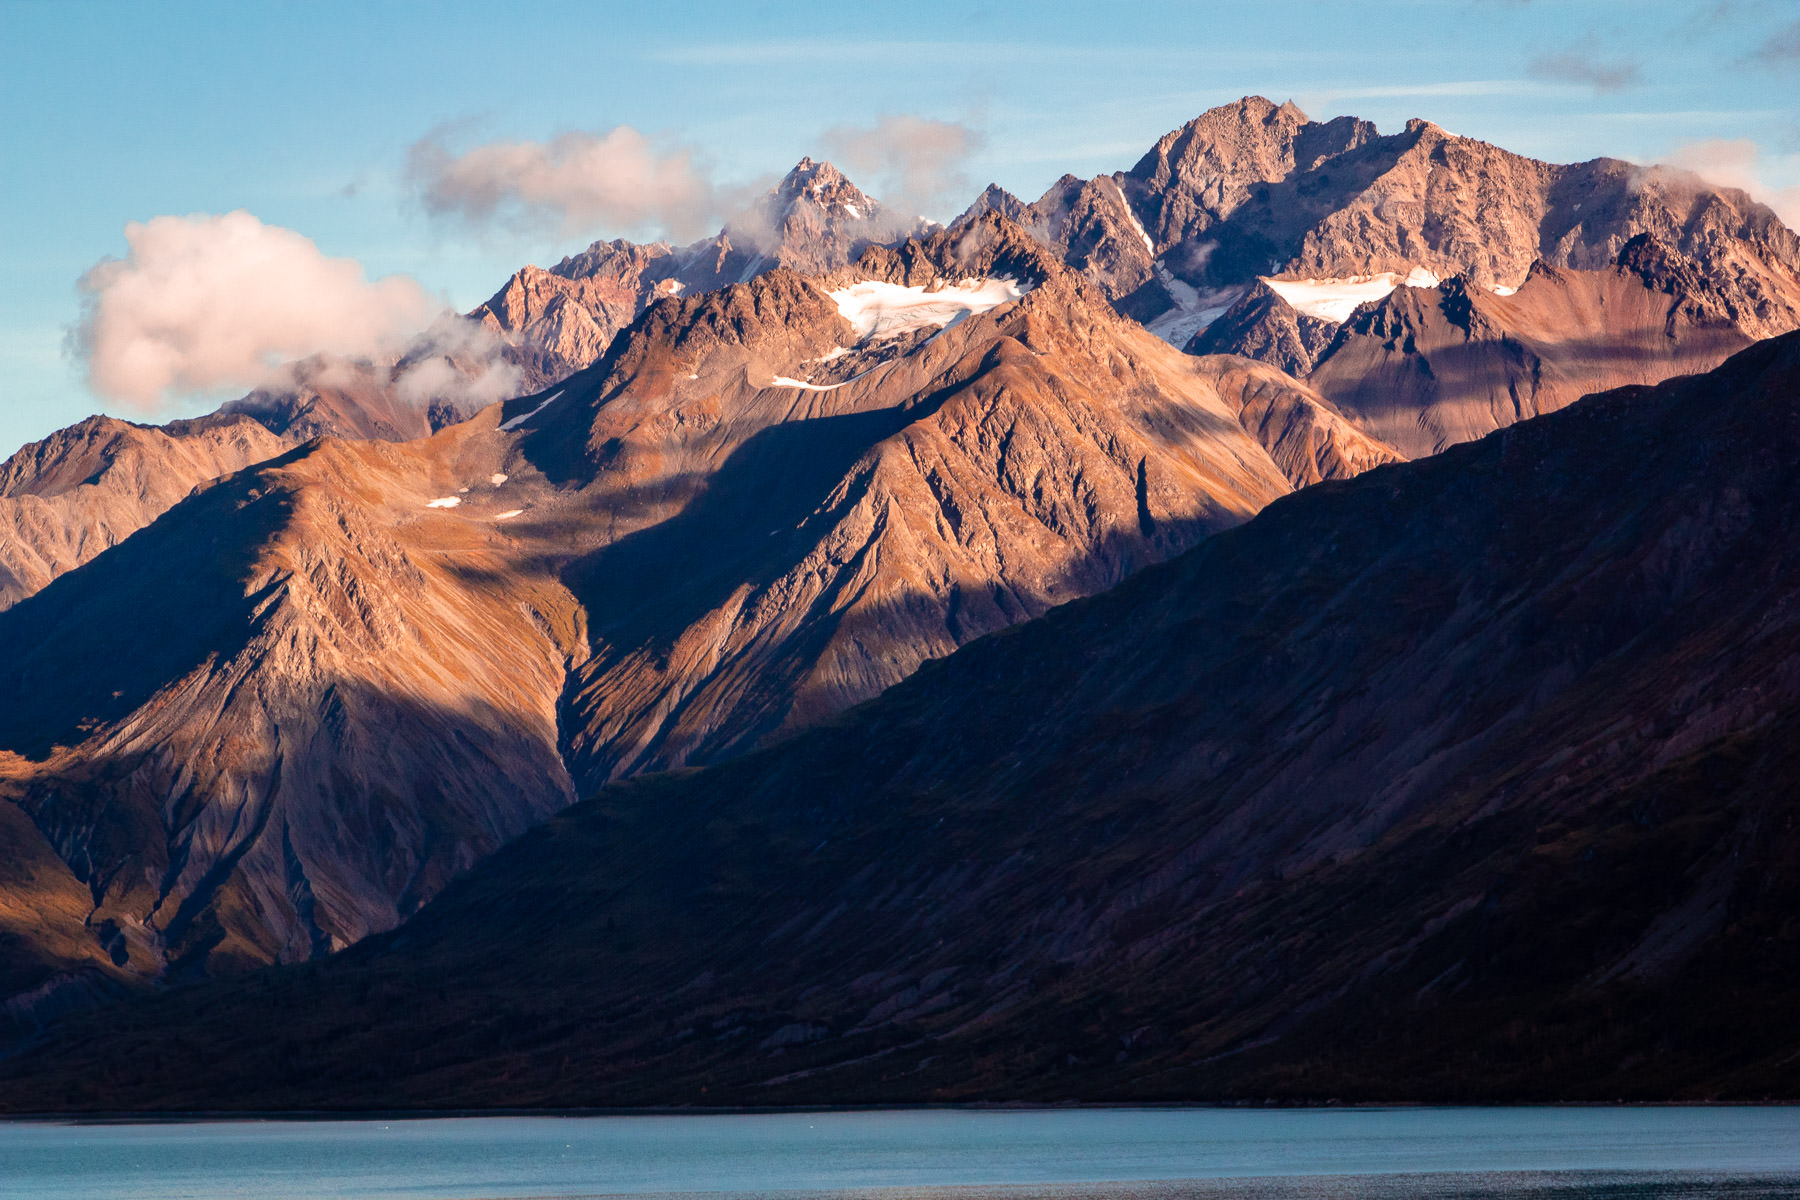 The morning sun illuminates mountains at Alaska's Glacier Bay National Park.